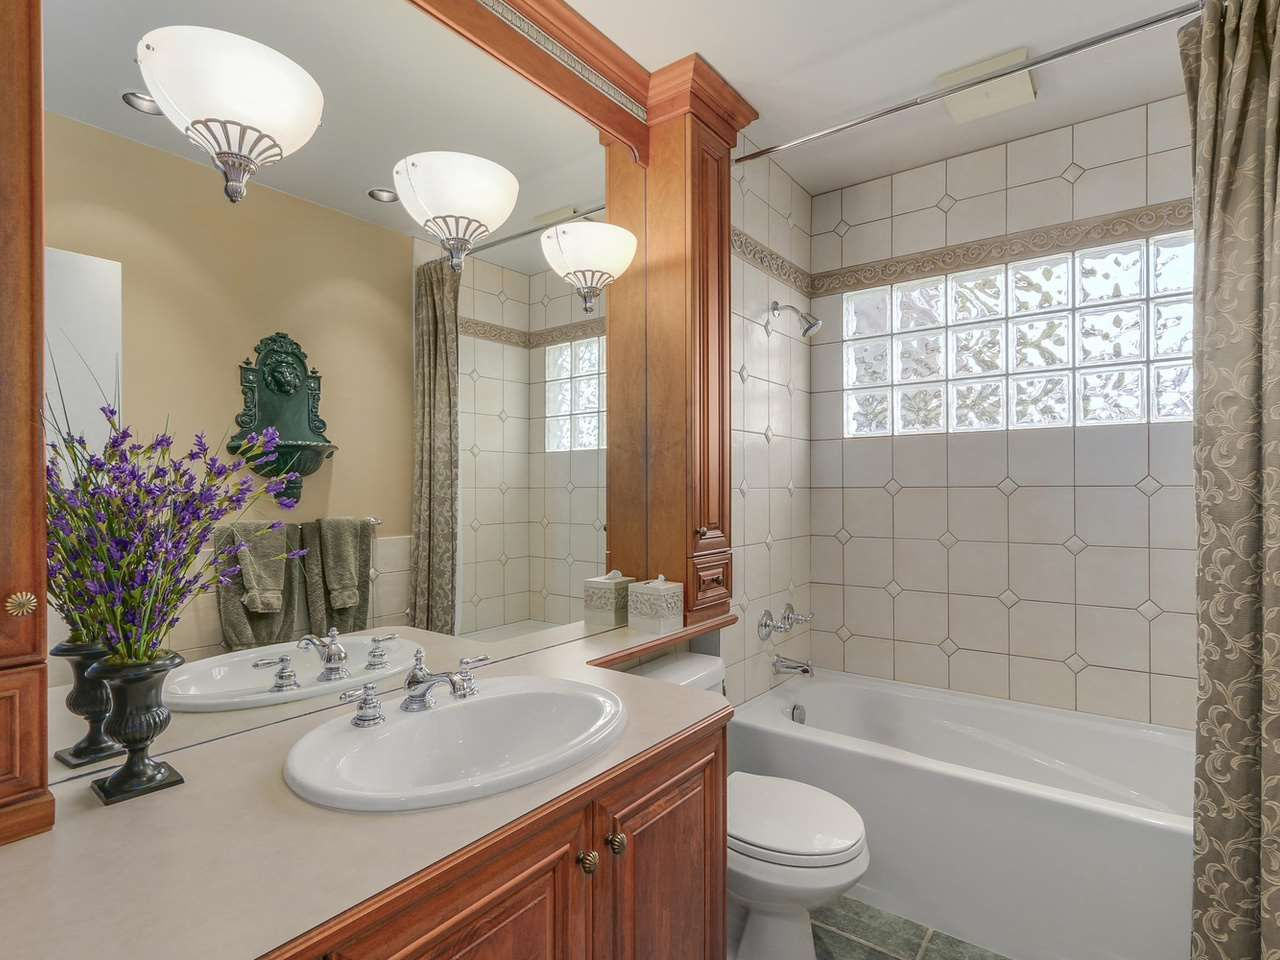 Photo 12: Photos: 587 HARRISON Avenue in Coquitlam: Coquitlam West House for sale : MLS®# R2097877